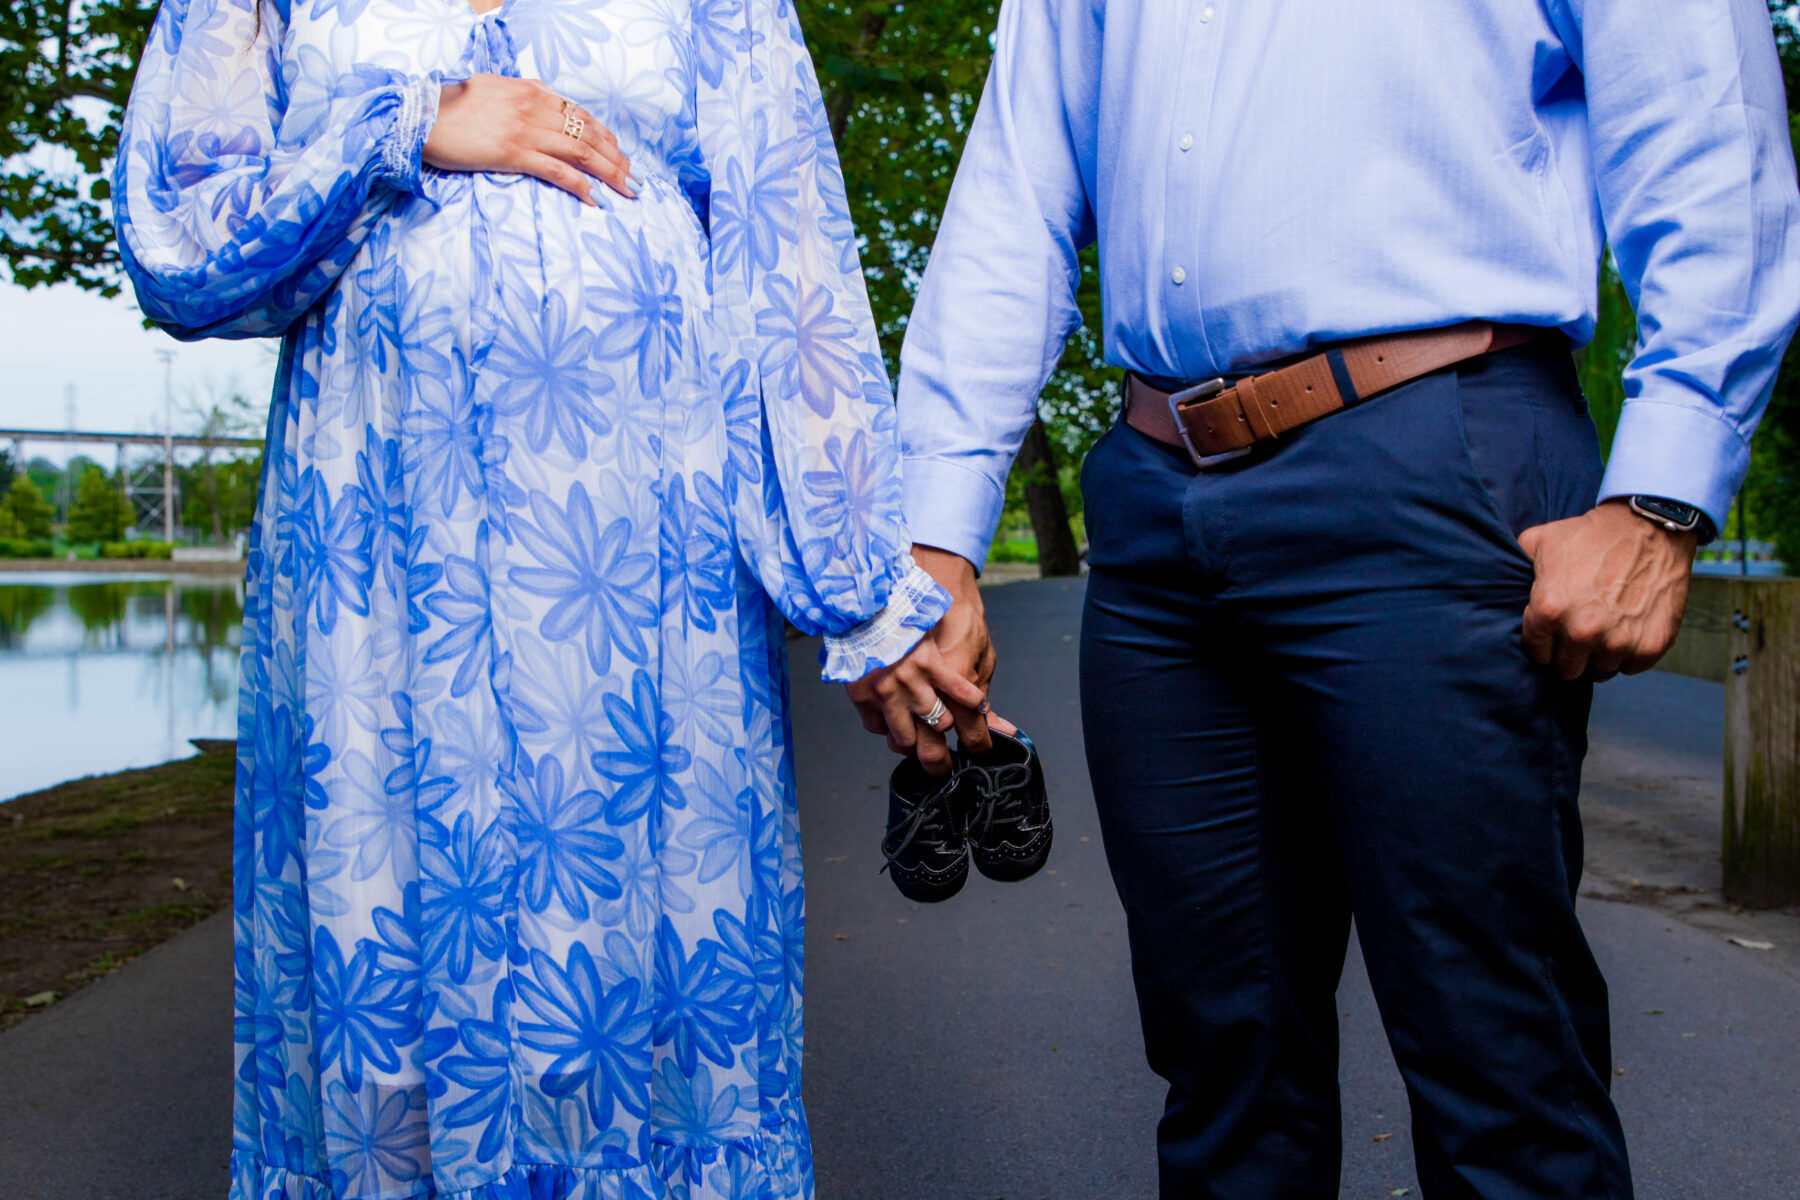 Shelby Park Maternity Shoot by Jonathan's Photography featured on Nashville Bride Guide